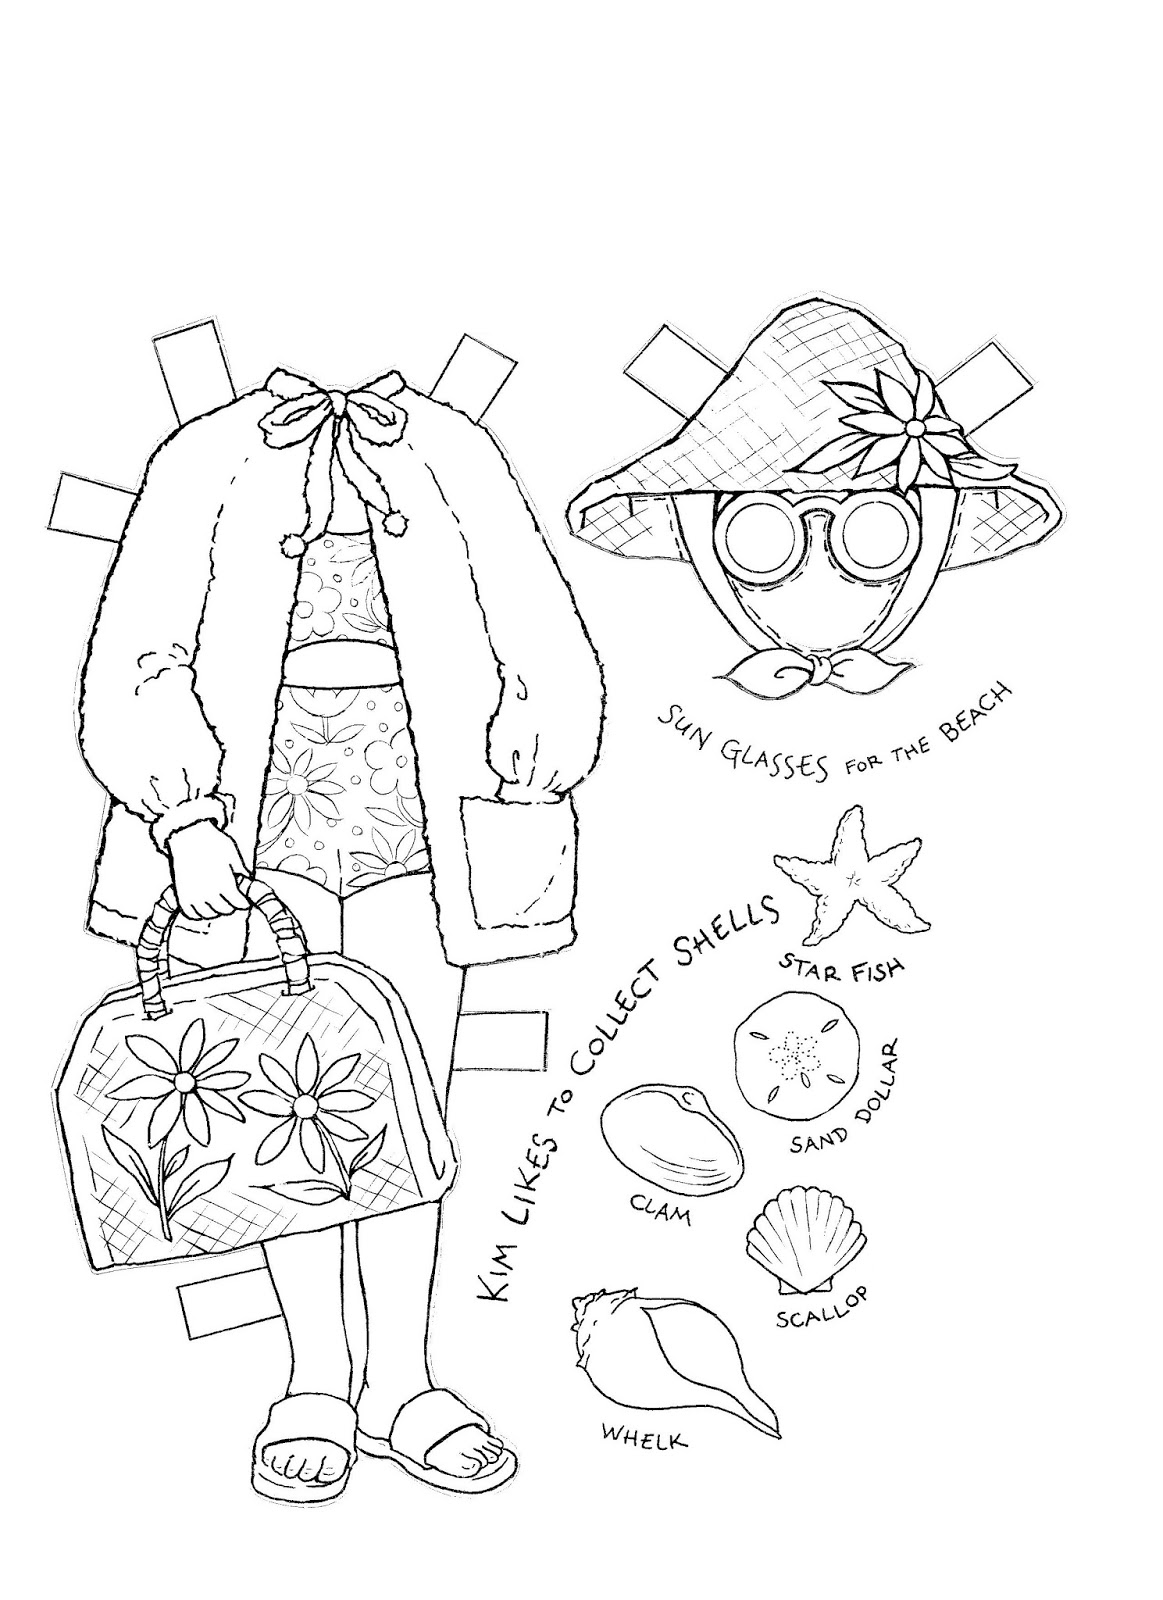 printable mary engelbreit coloring pages - photo#27